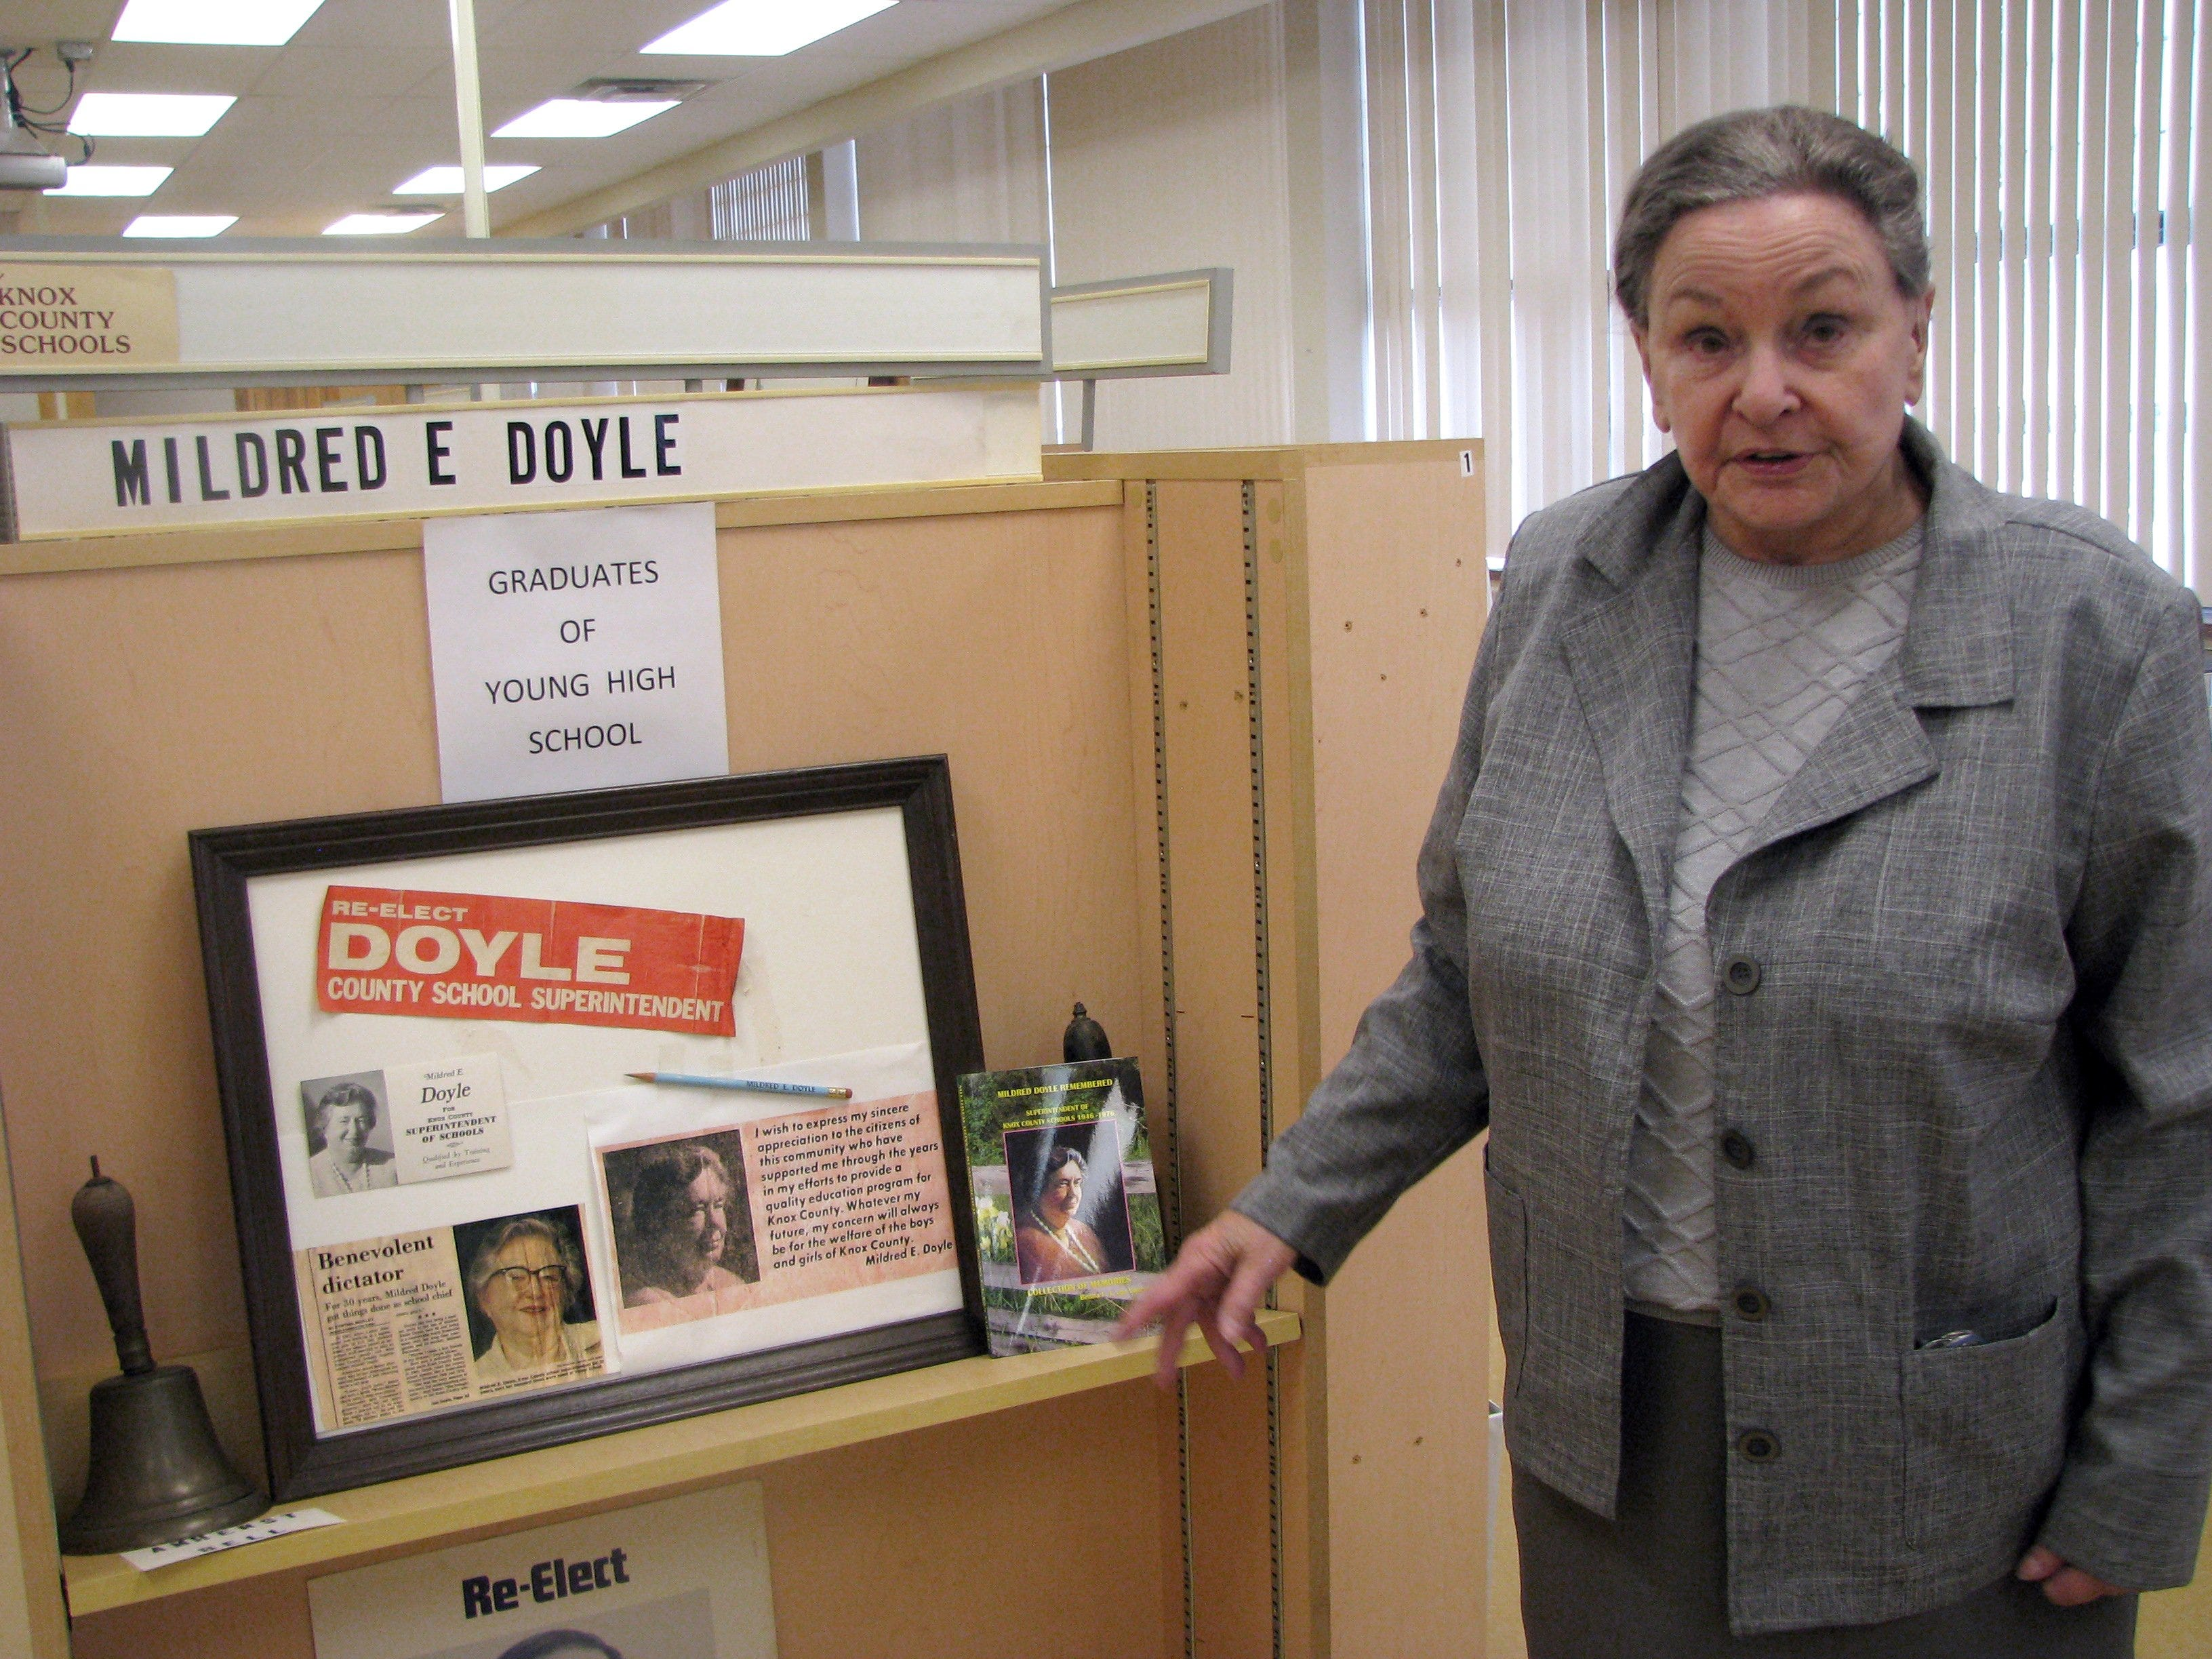 Knox County Museum of Education director Benna van Vuuren points out a display on Young High School graduate Mildred E. Doyle, who was Knox County's longest elected superintendent of schools, serving 1946-76. Van Vuuren wrote a biography on Doyle.